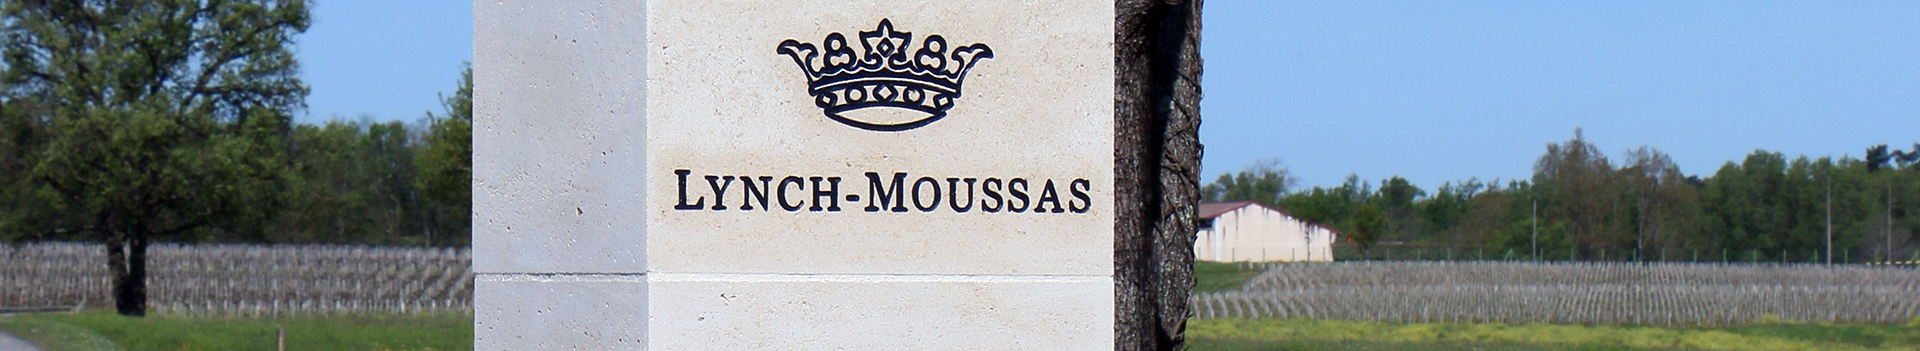 D-Chateau_Lynch-Moussas